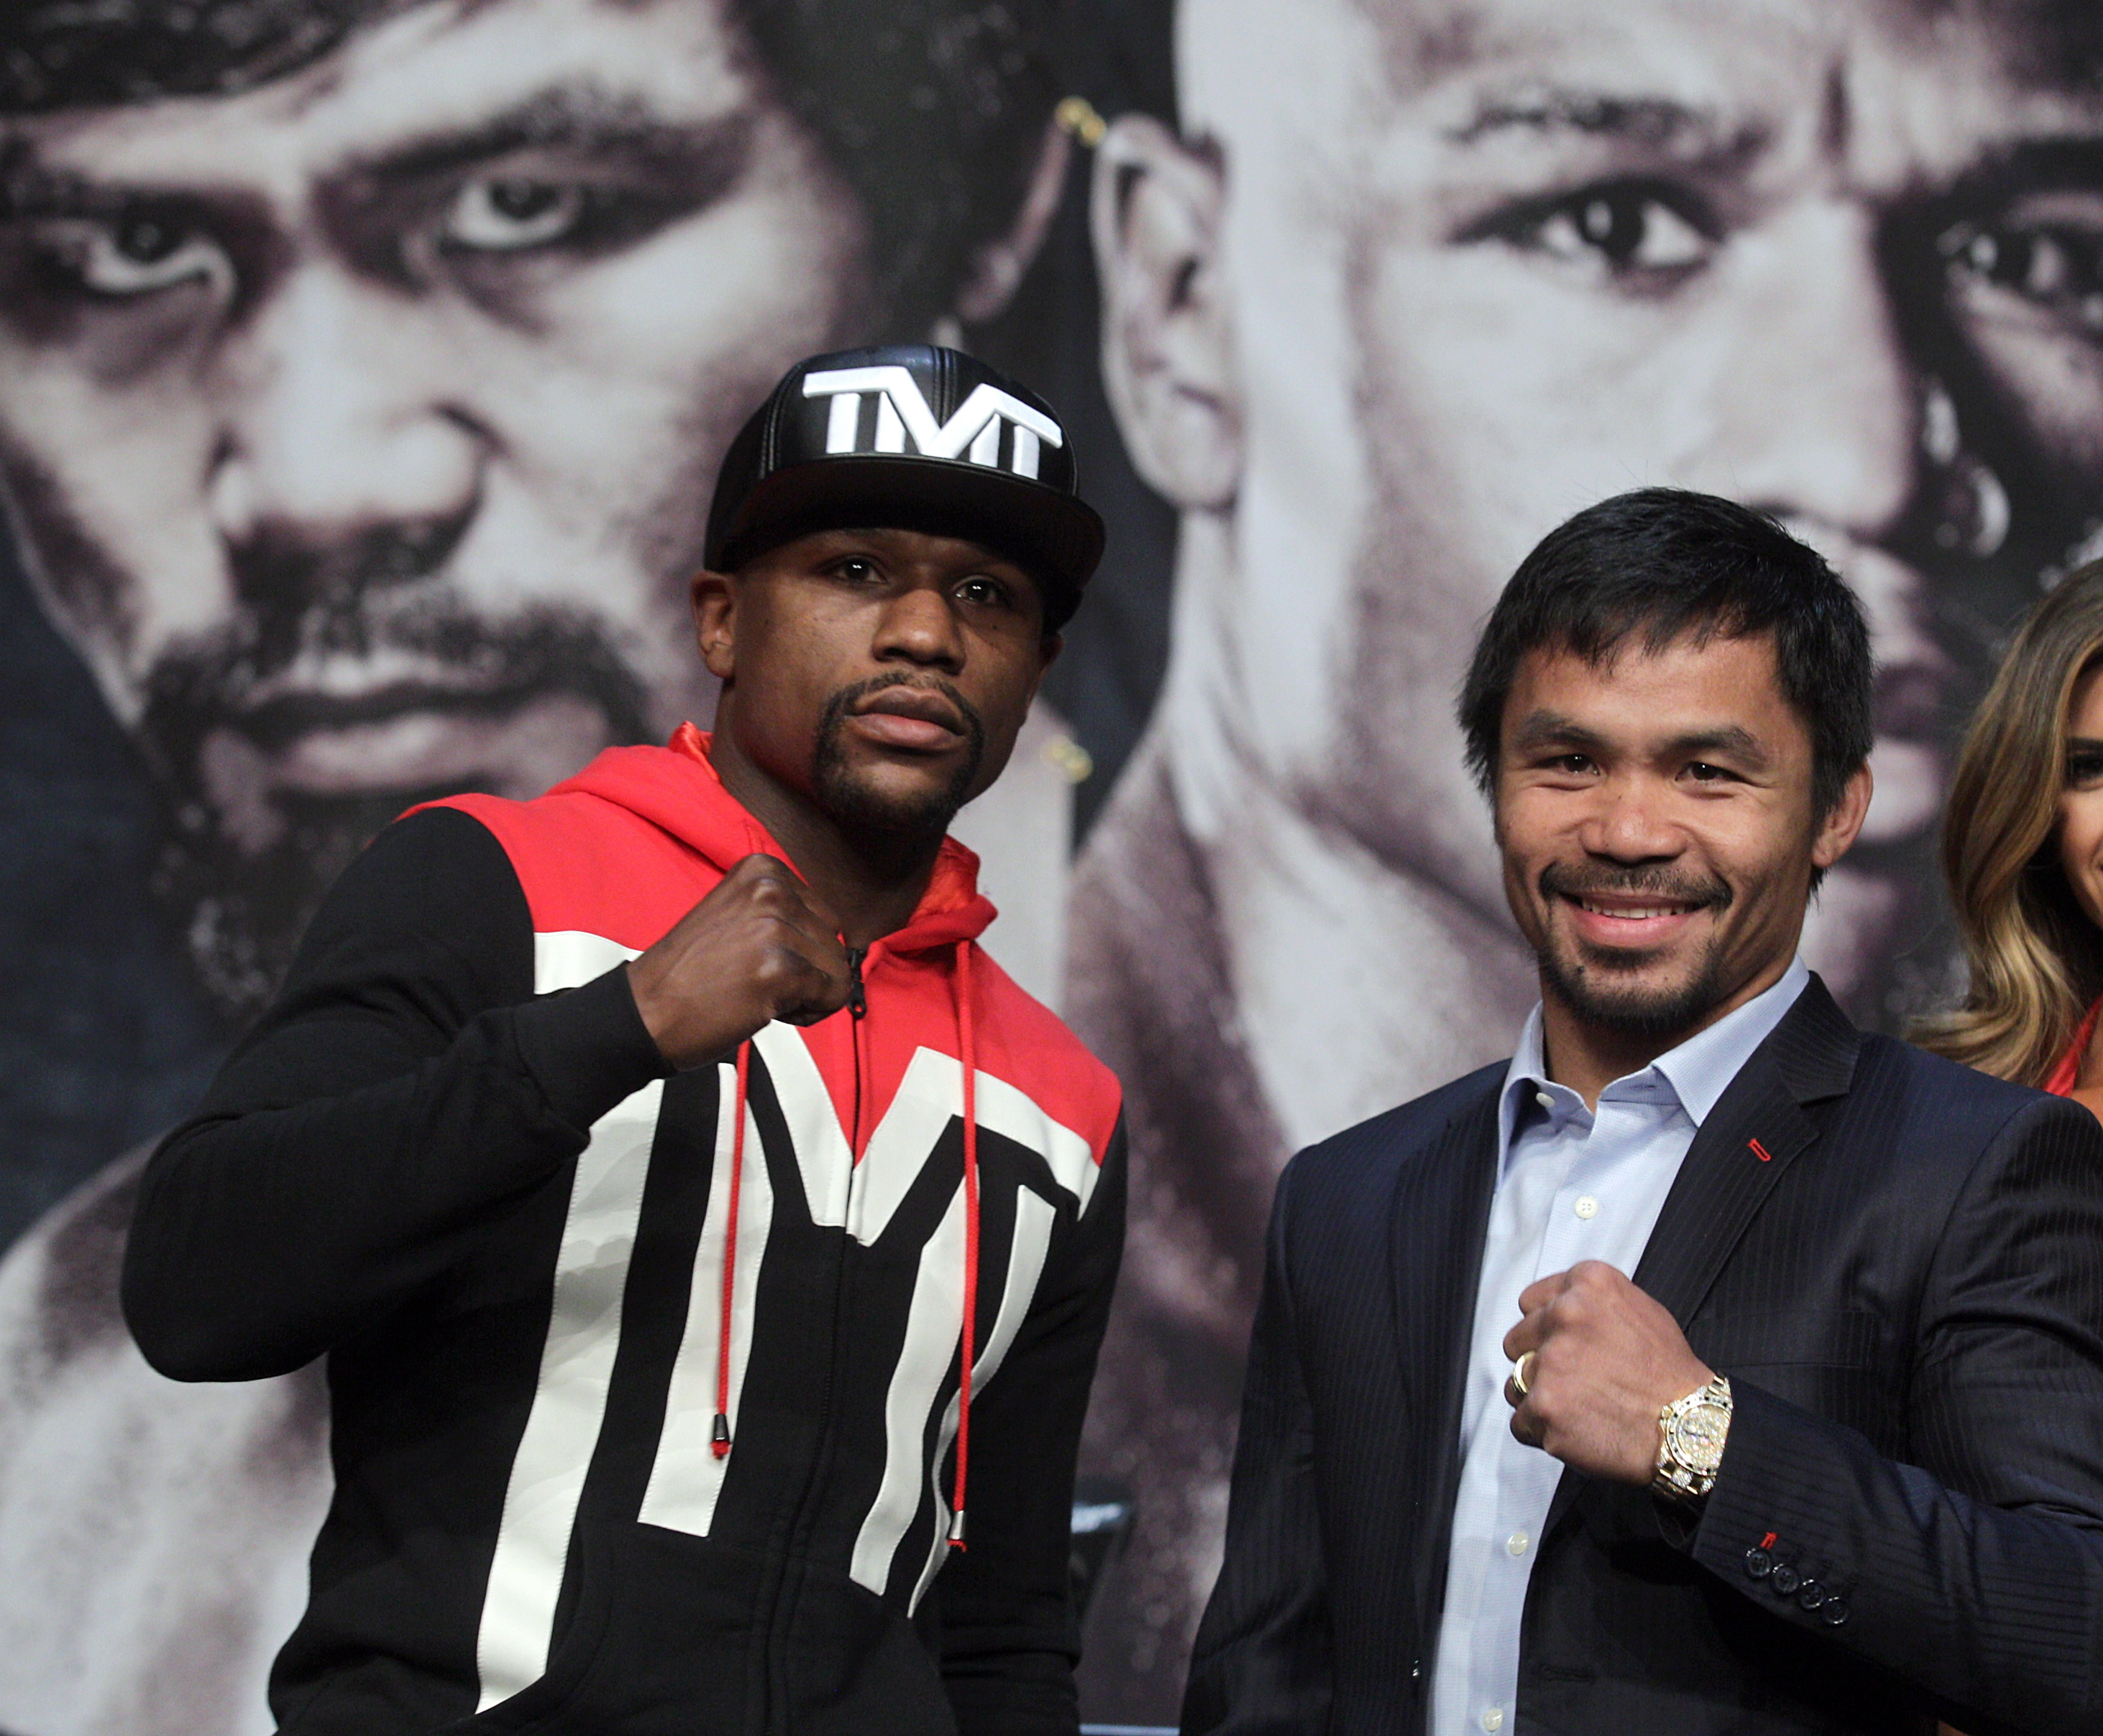 WBC/WBA welterweight champion Floyd Mayweather Jr. (L) and WBO welterweight champion Manny Pacquiao pose during a news conference at the KA Theatre at MGM Grand Hotel & Casino on April 29, 2015 in Las Vegas, Nevada. The two will face each other in a unification bout on May 2, 2015 in Las Vegas.